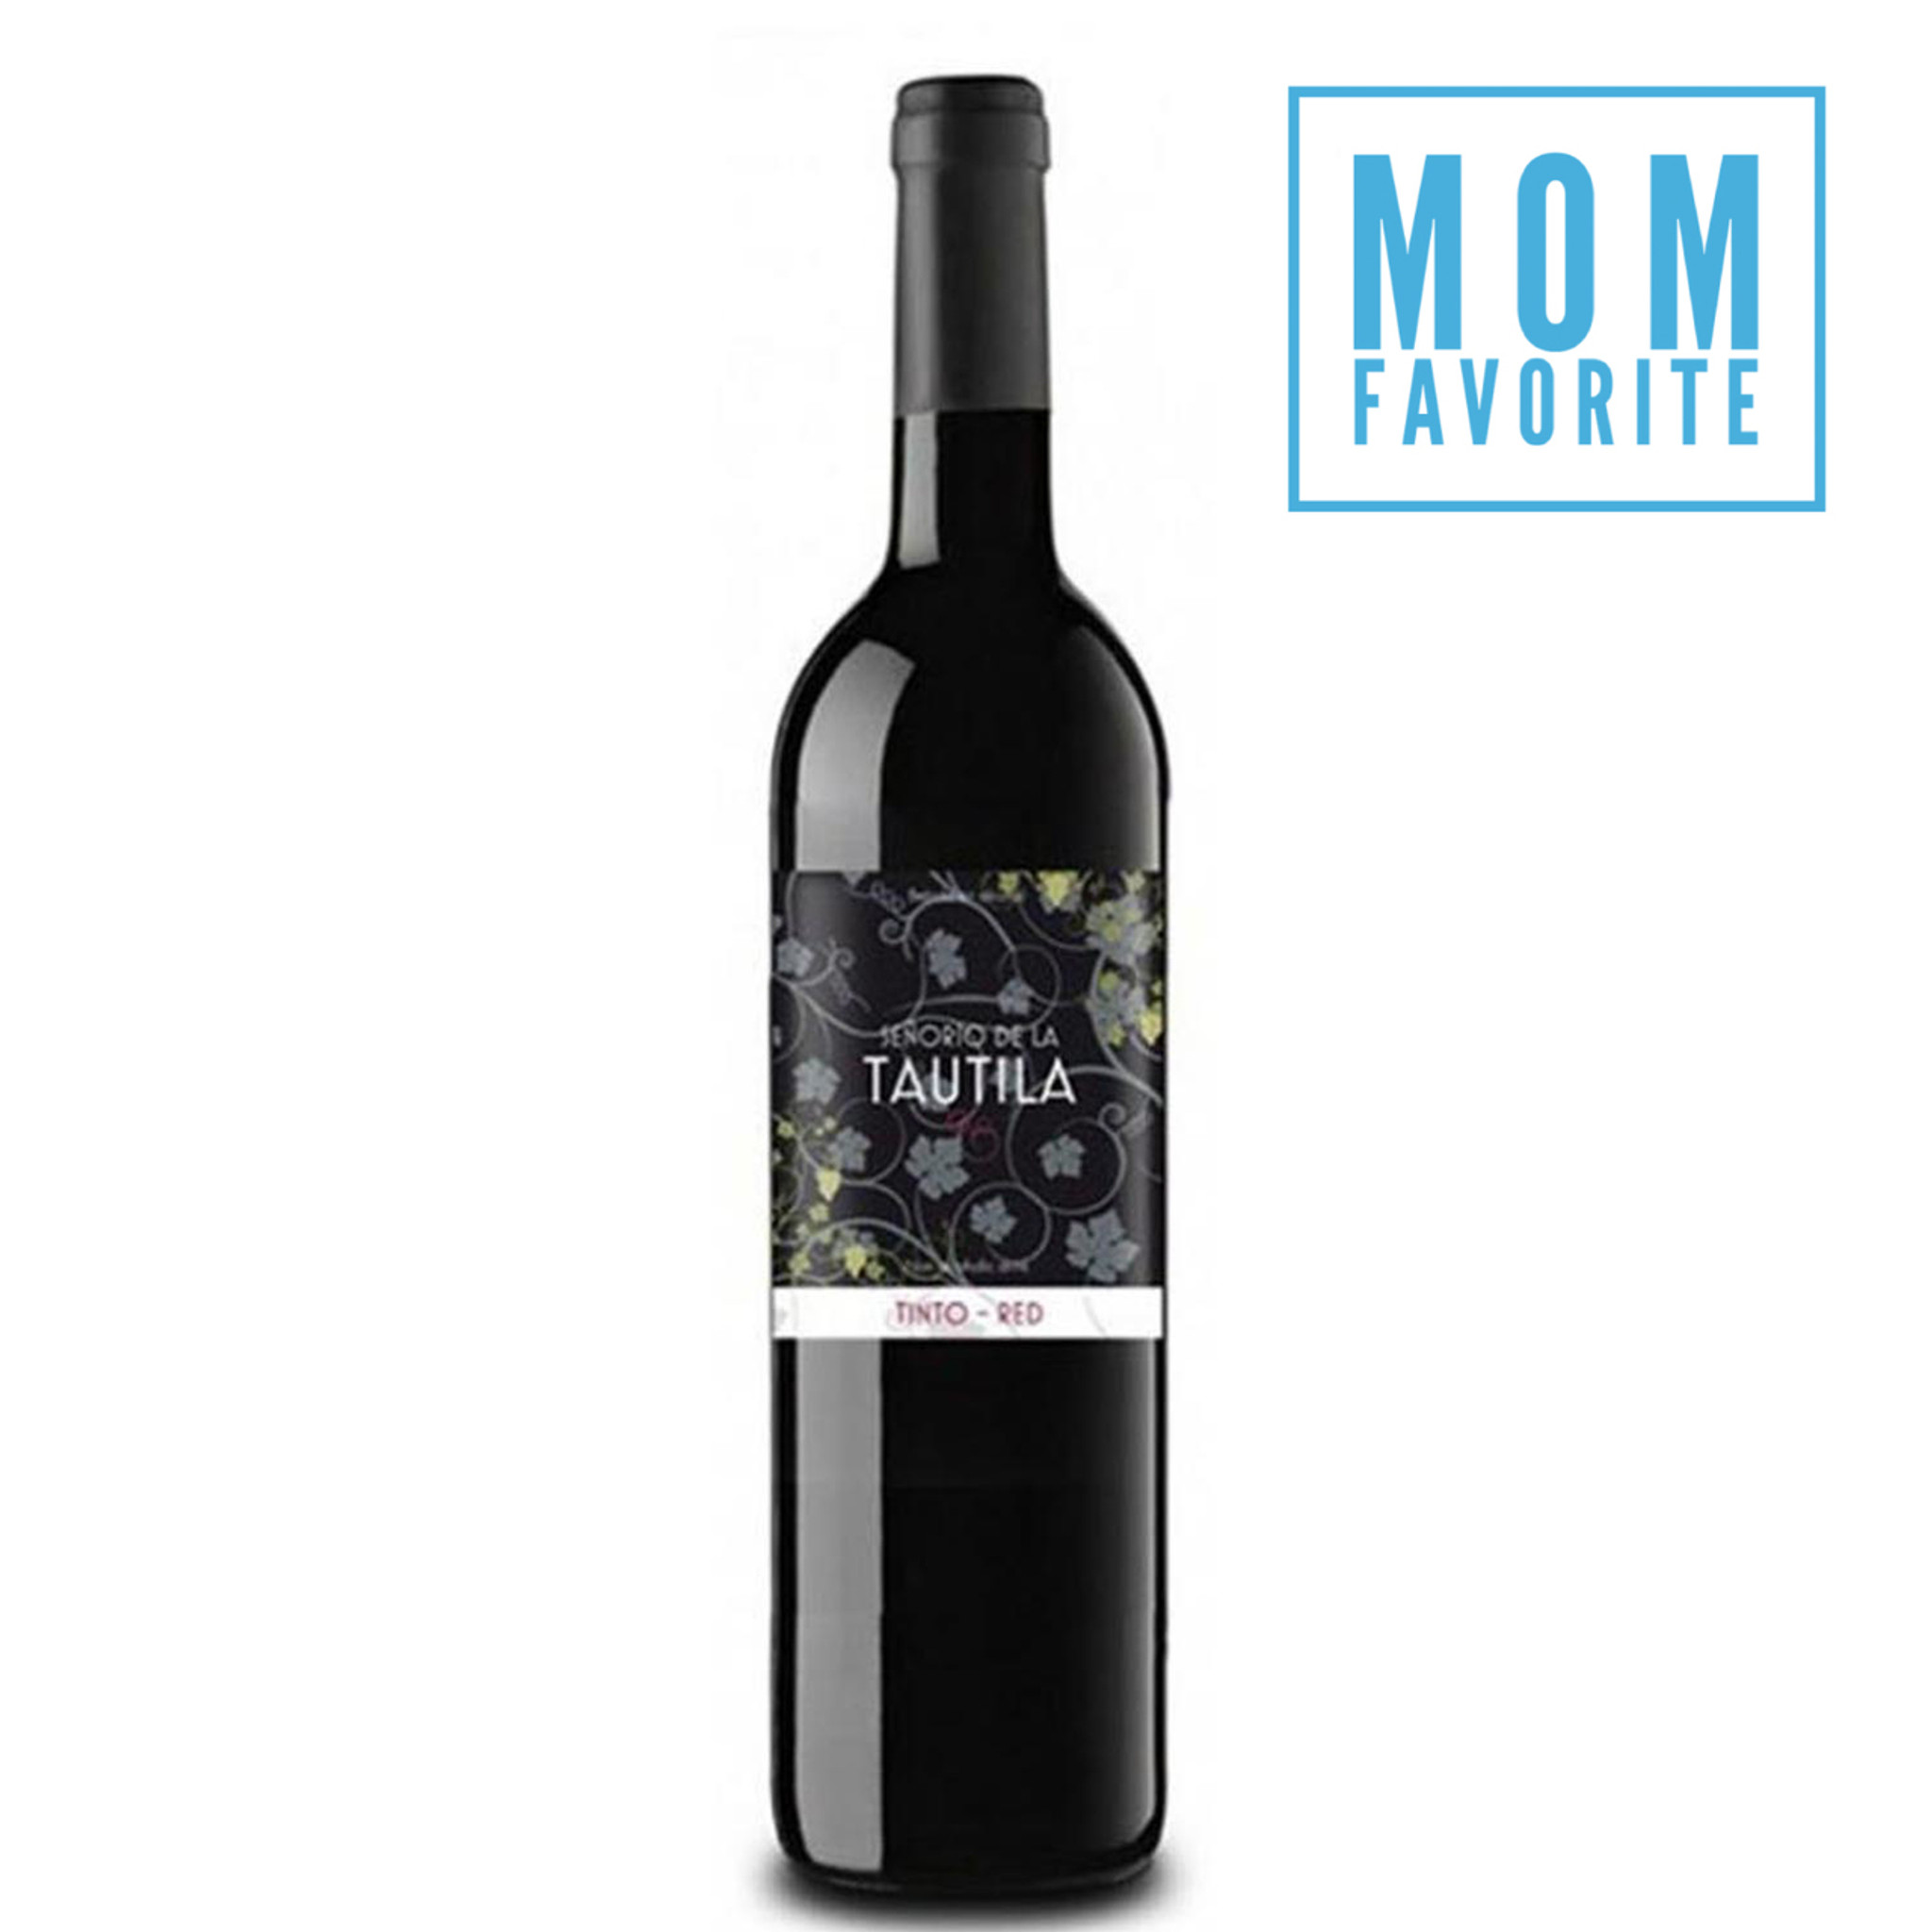 Senorio de la Tautila Tinto Alcohol Free Red Wine Mom Favorite